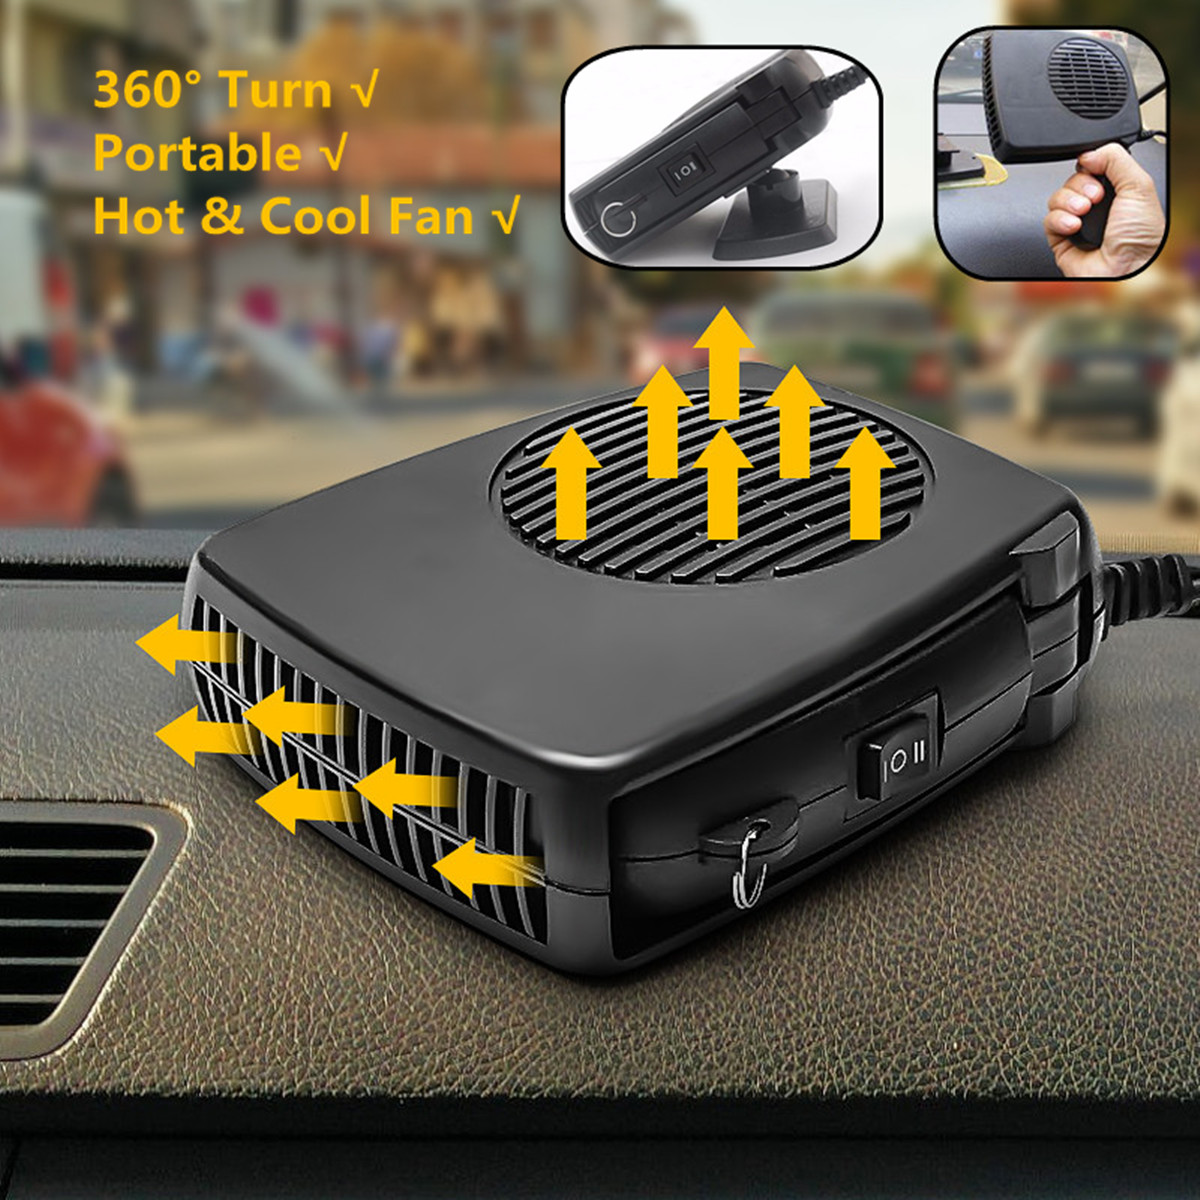 1Pcs 150W 24V Portable Auto Heater Fan Car Heating Cooling Electric Travel Defroster Demister with Swing-out Handle